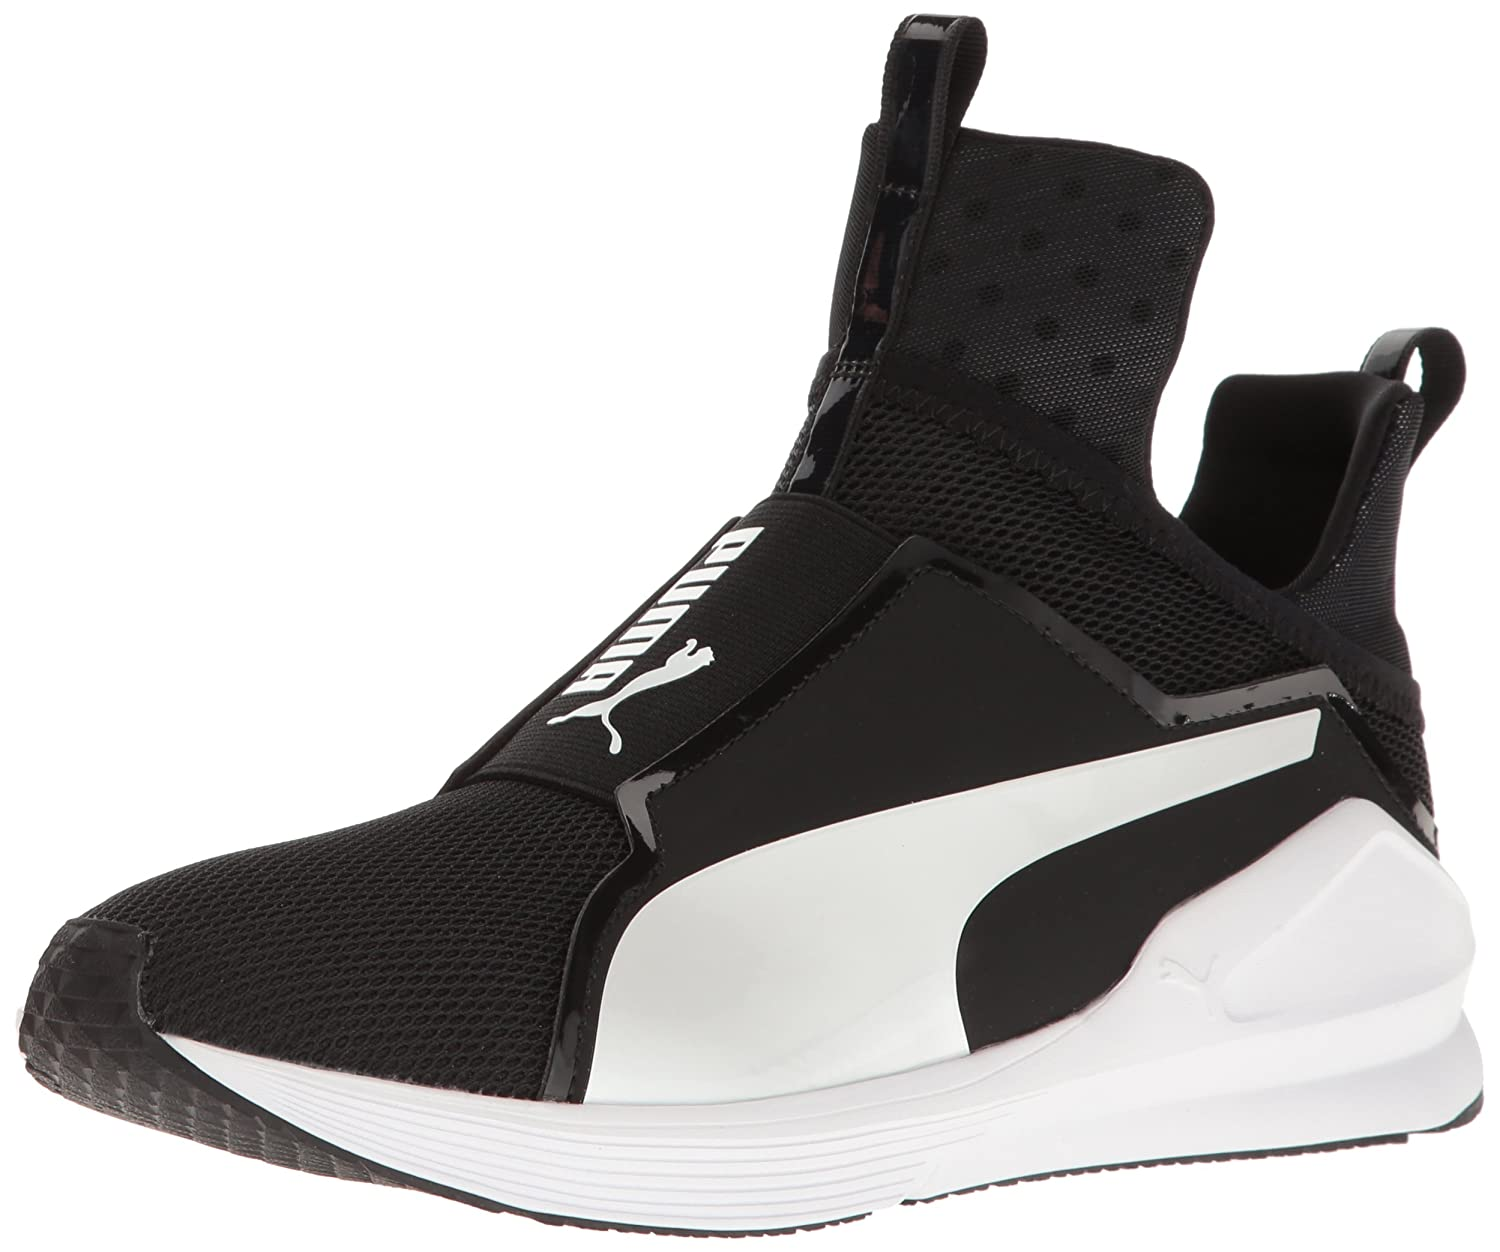 PUMA Women's Fierce Core Cross-Trainer Shoe B01J5RW1AK 10 B(M) US|Puma Black-puma White